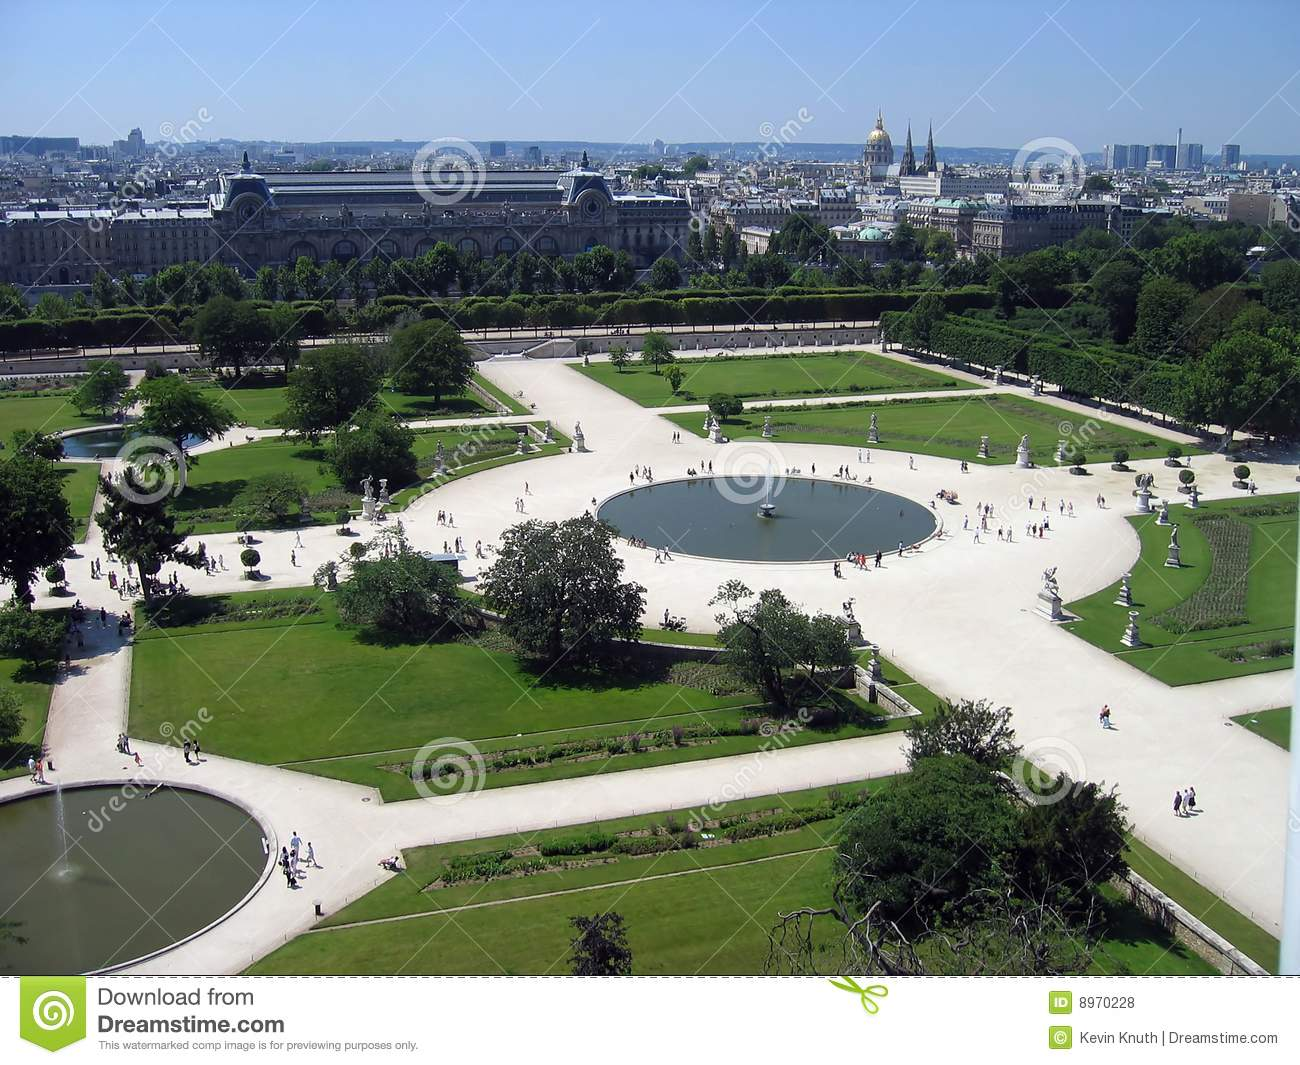 Jardin des tuileries royalty free stock photos image for Jardin tuileries